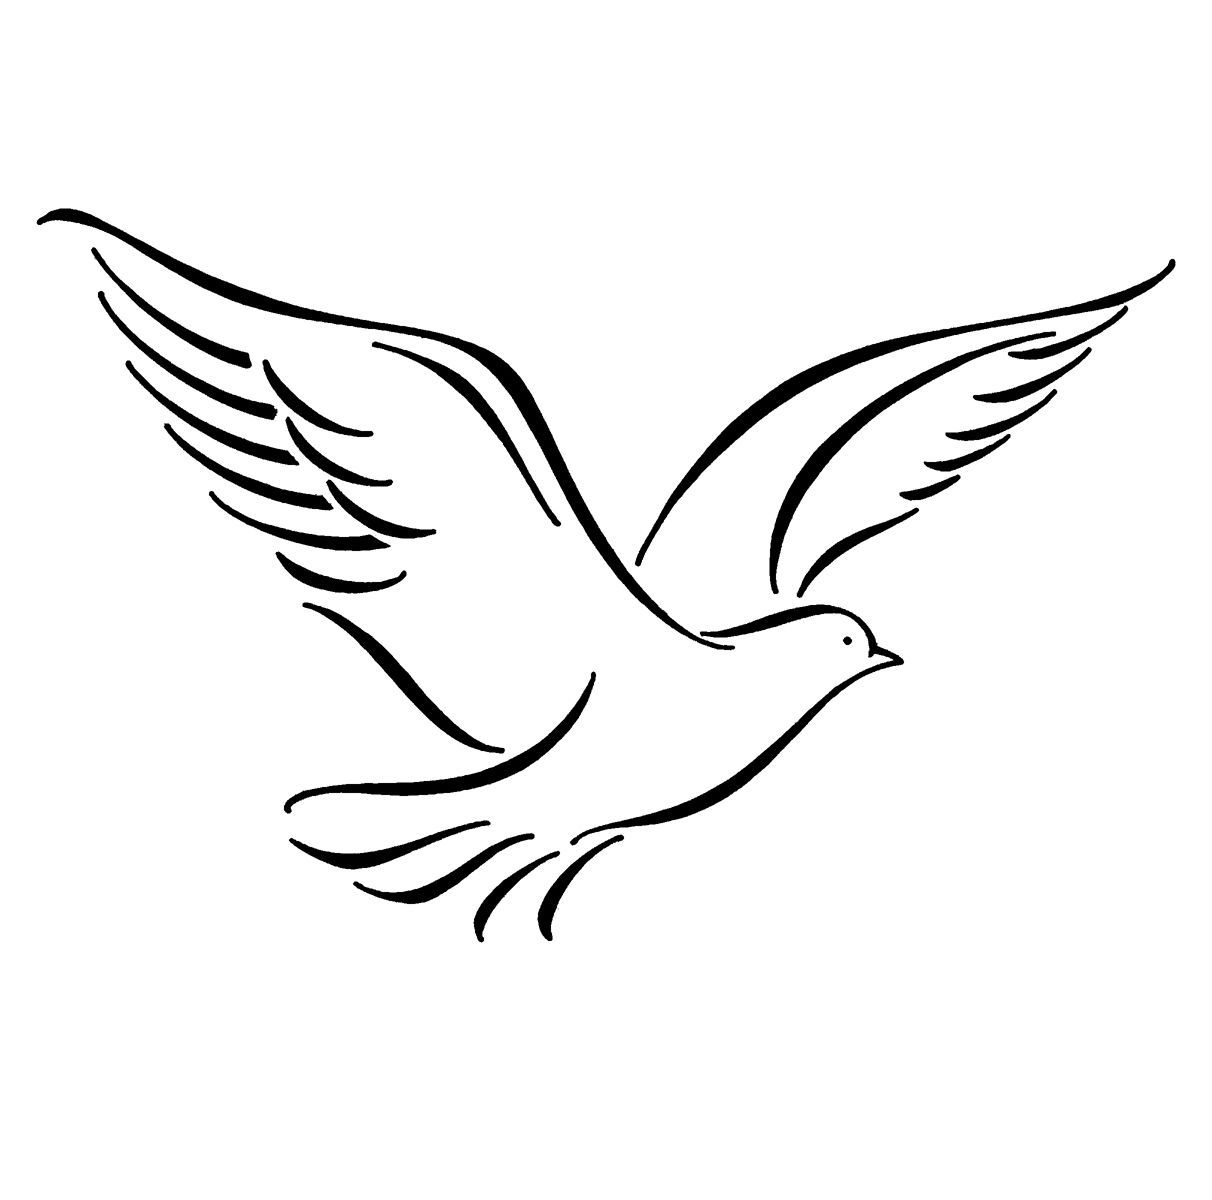 Bird soaring clipart svg library download Soaring bird clipart 1 » Clipart Portal svg library download